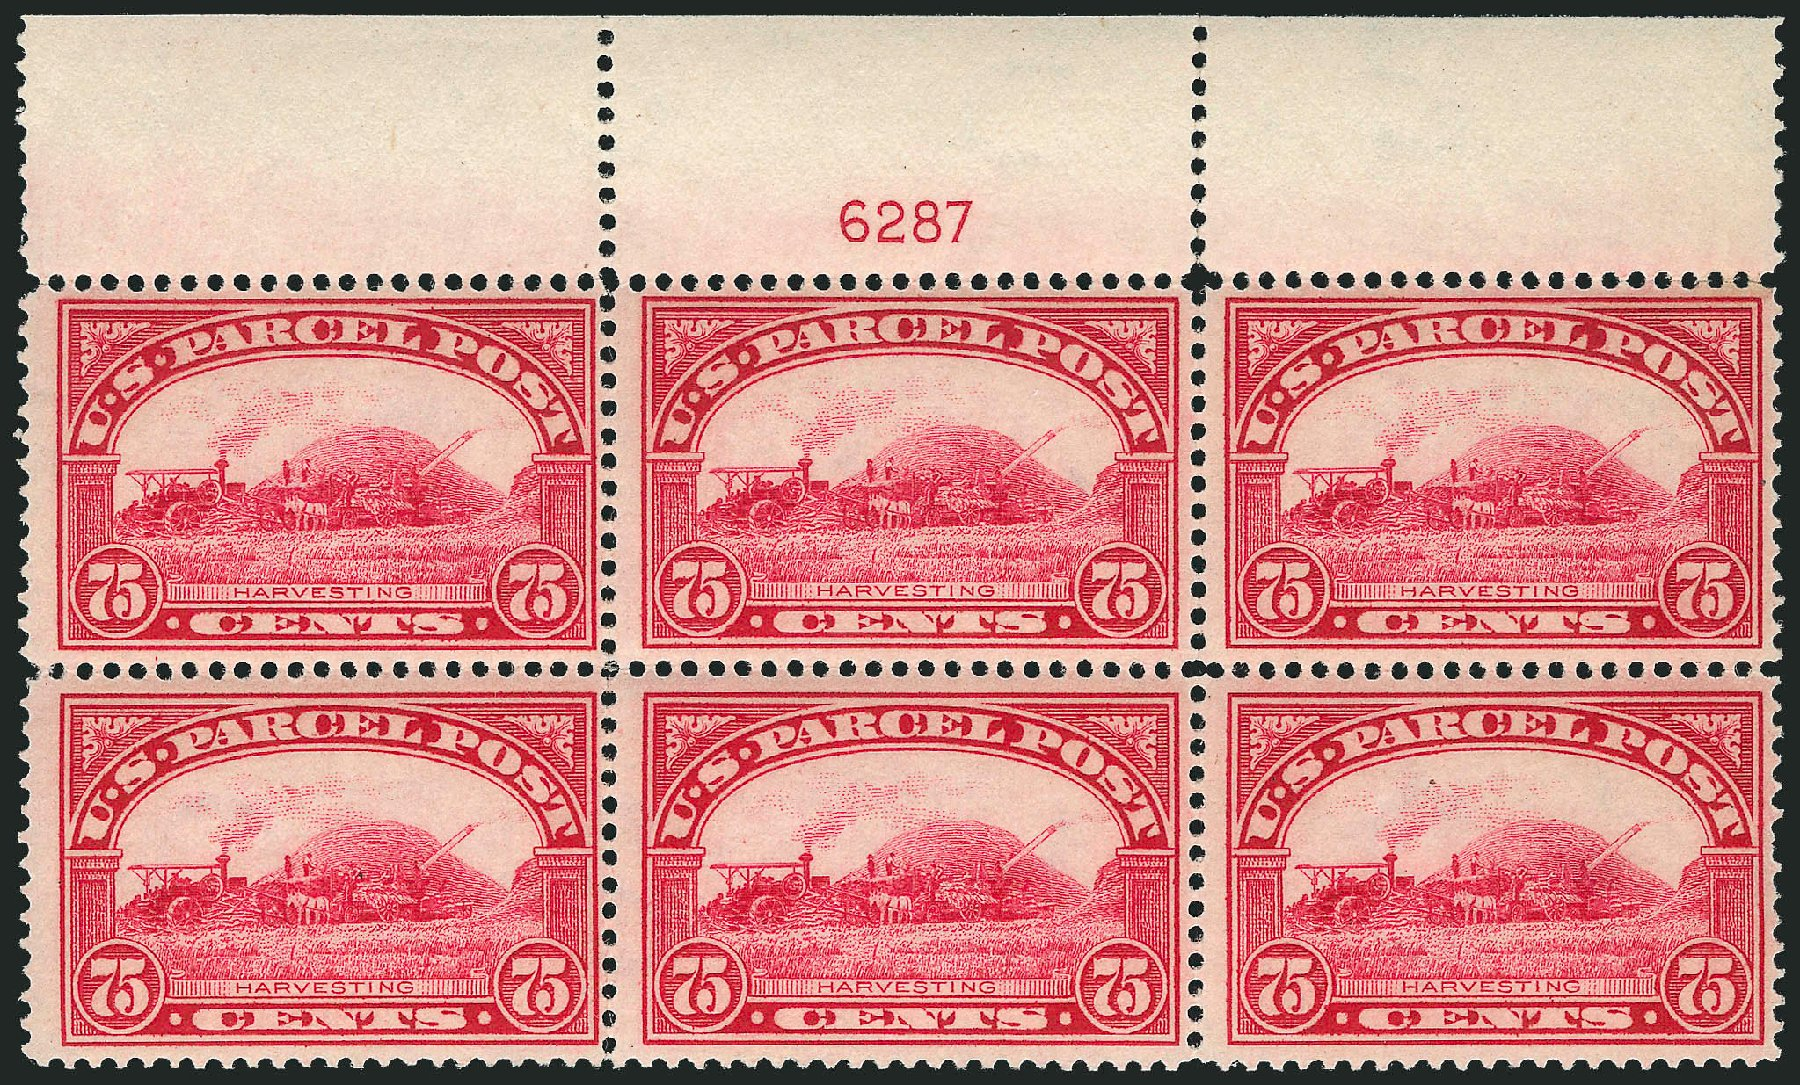 Value of US Stamps Scott Q11 - 1913 75c Parcel Post. Robert Siegel Auction Galleries, Apr 2015, Sale 1096, Lot 954